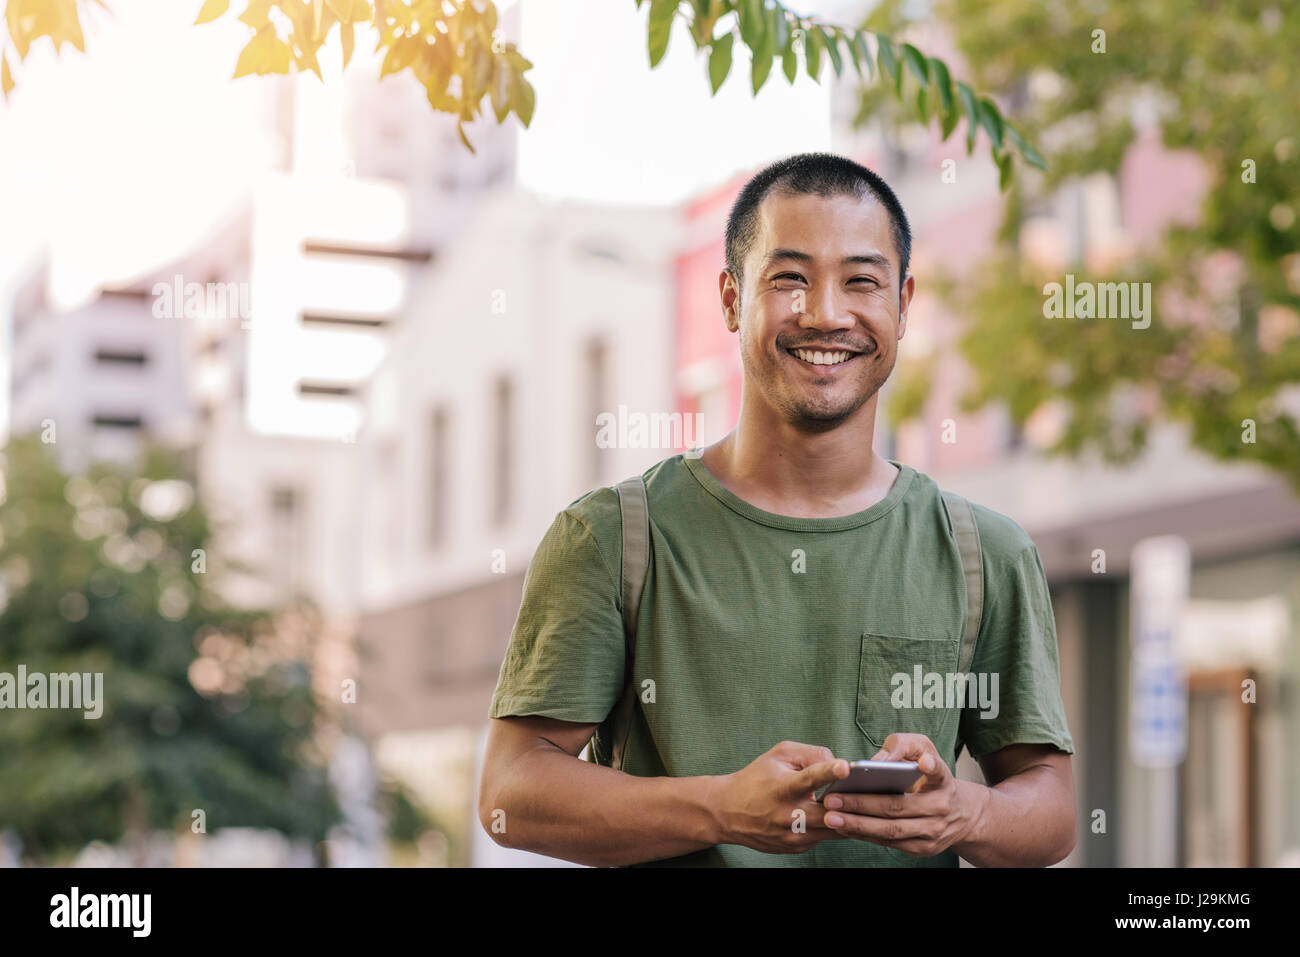 Young Asian man sending a text on his cellphone outside - Stock Image